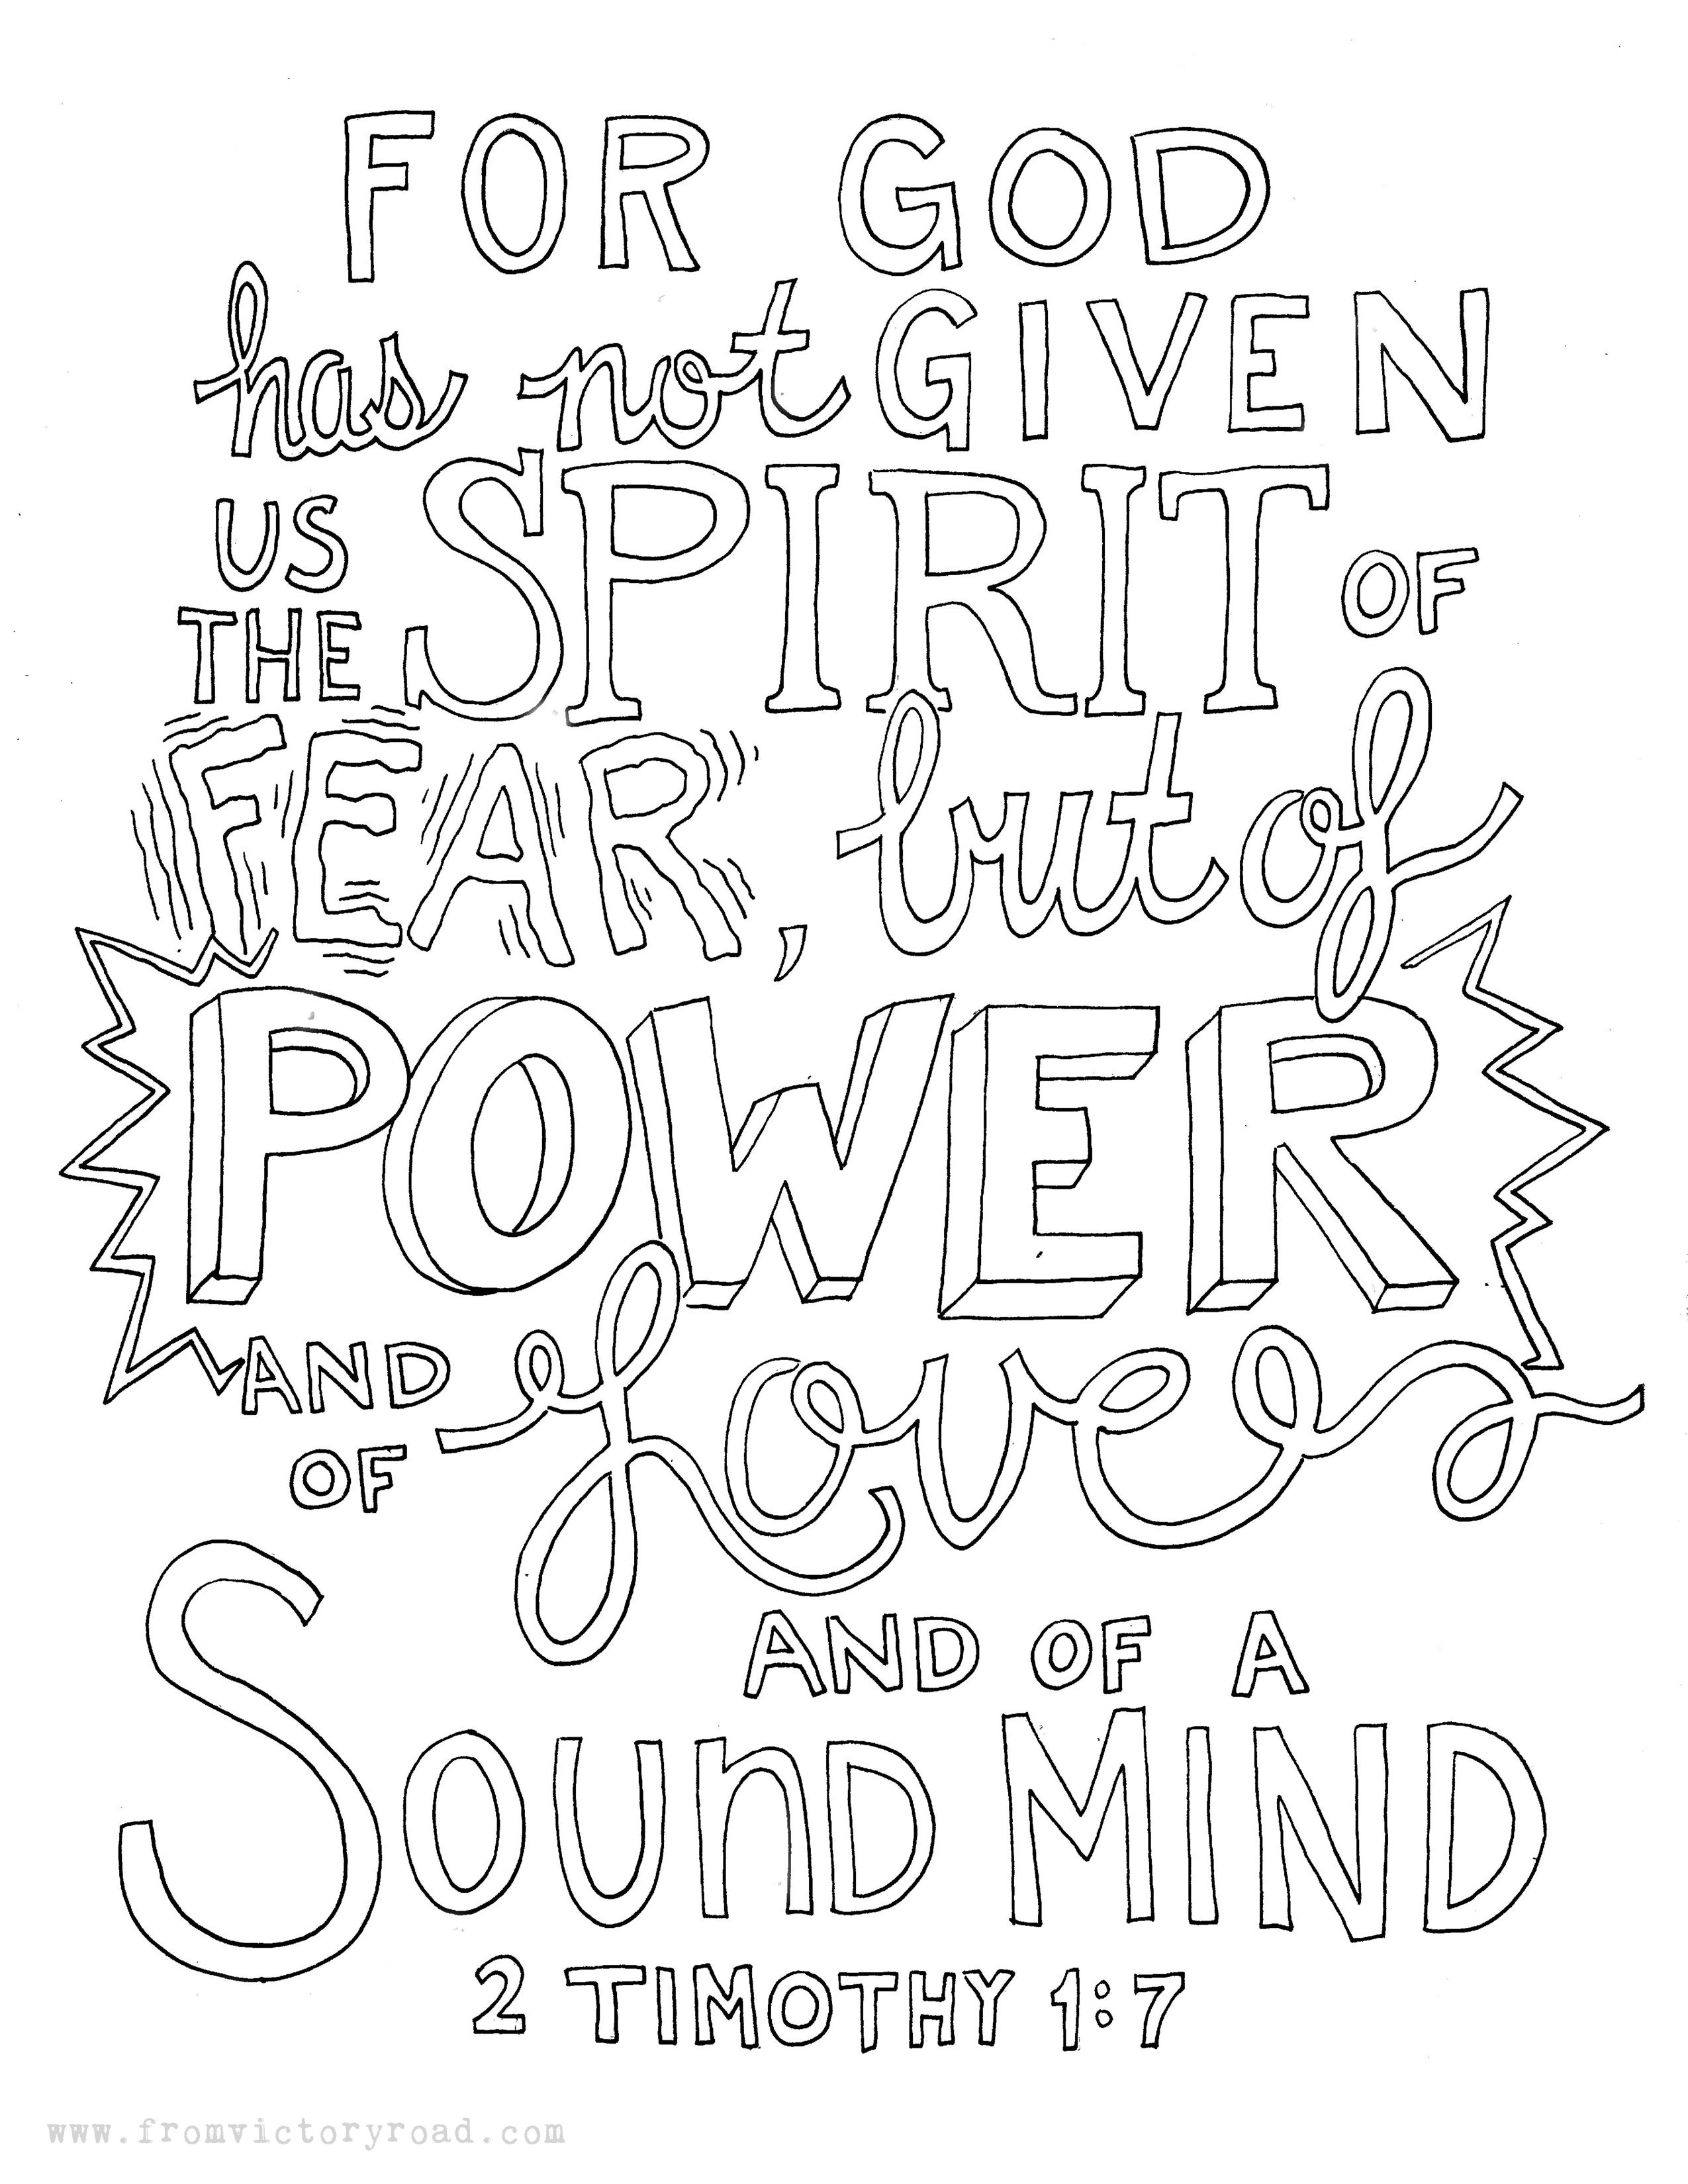 2 Timothy 1:7 coloring page